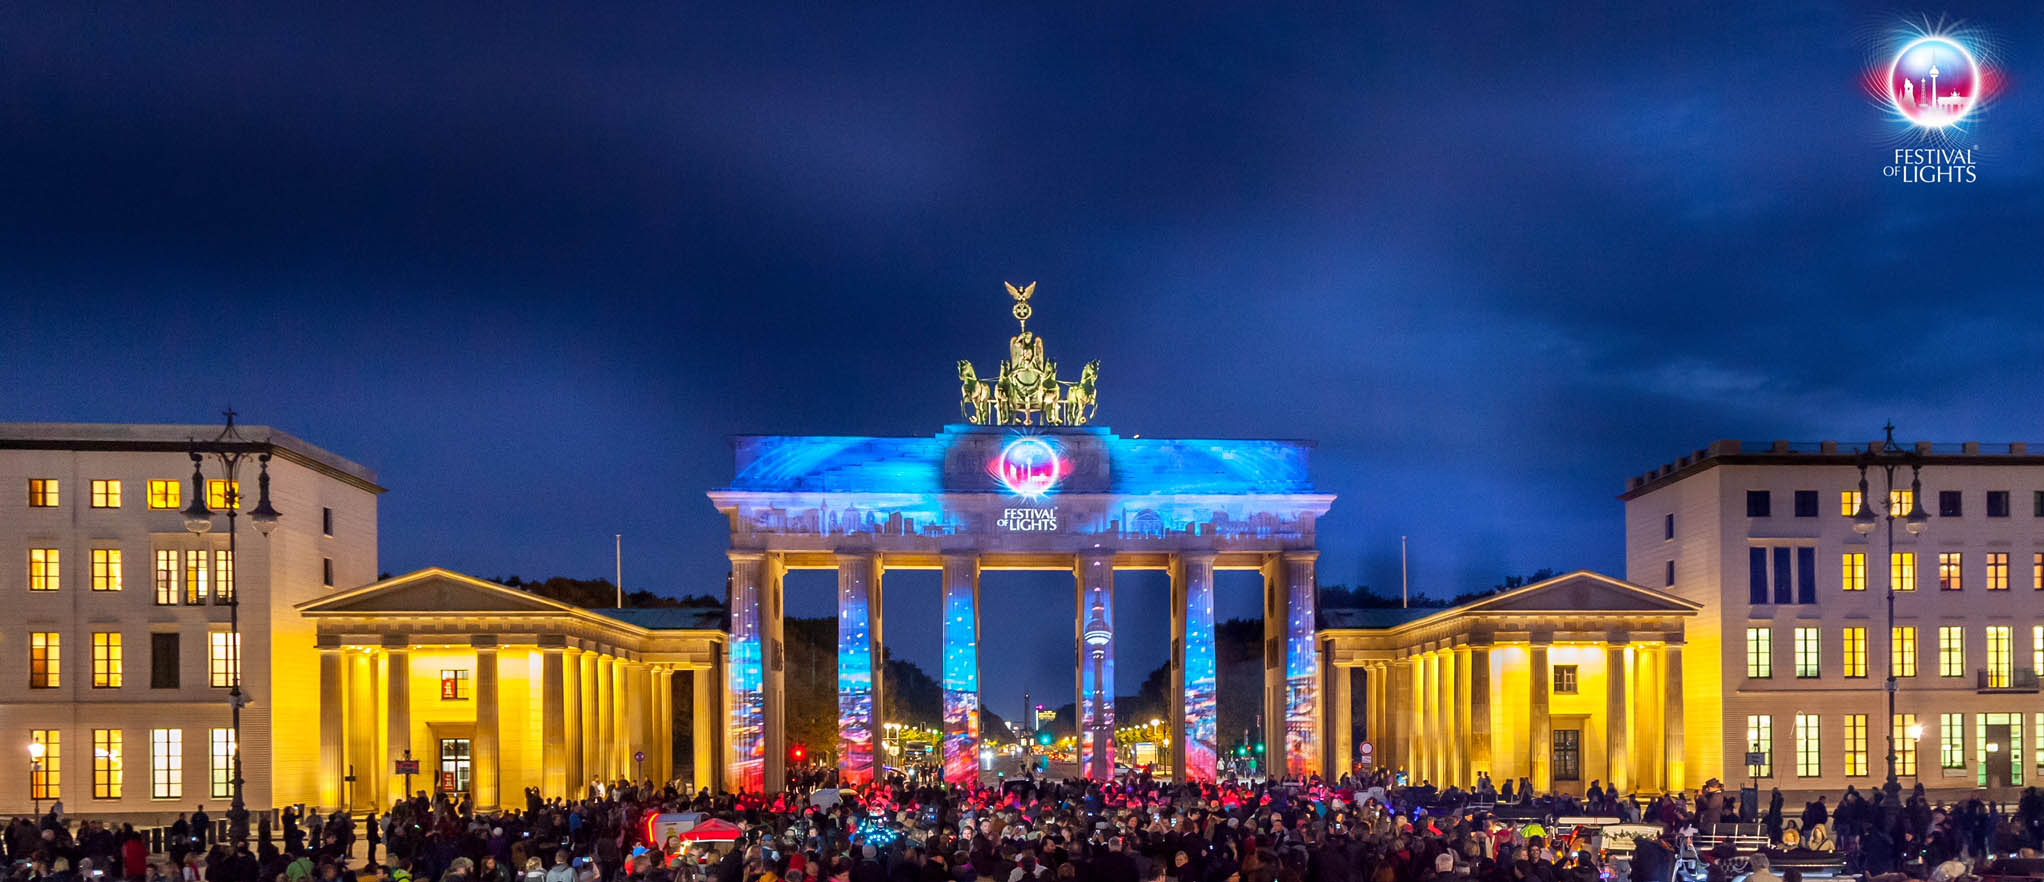 Berlin illuminated: Festival of Lights